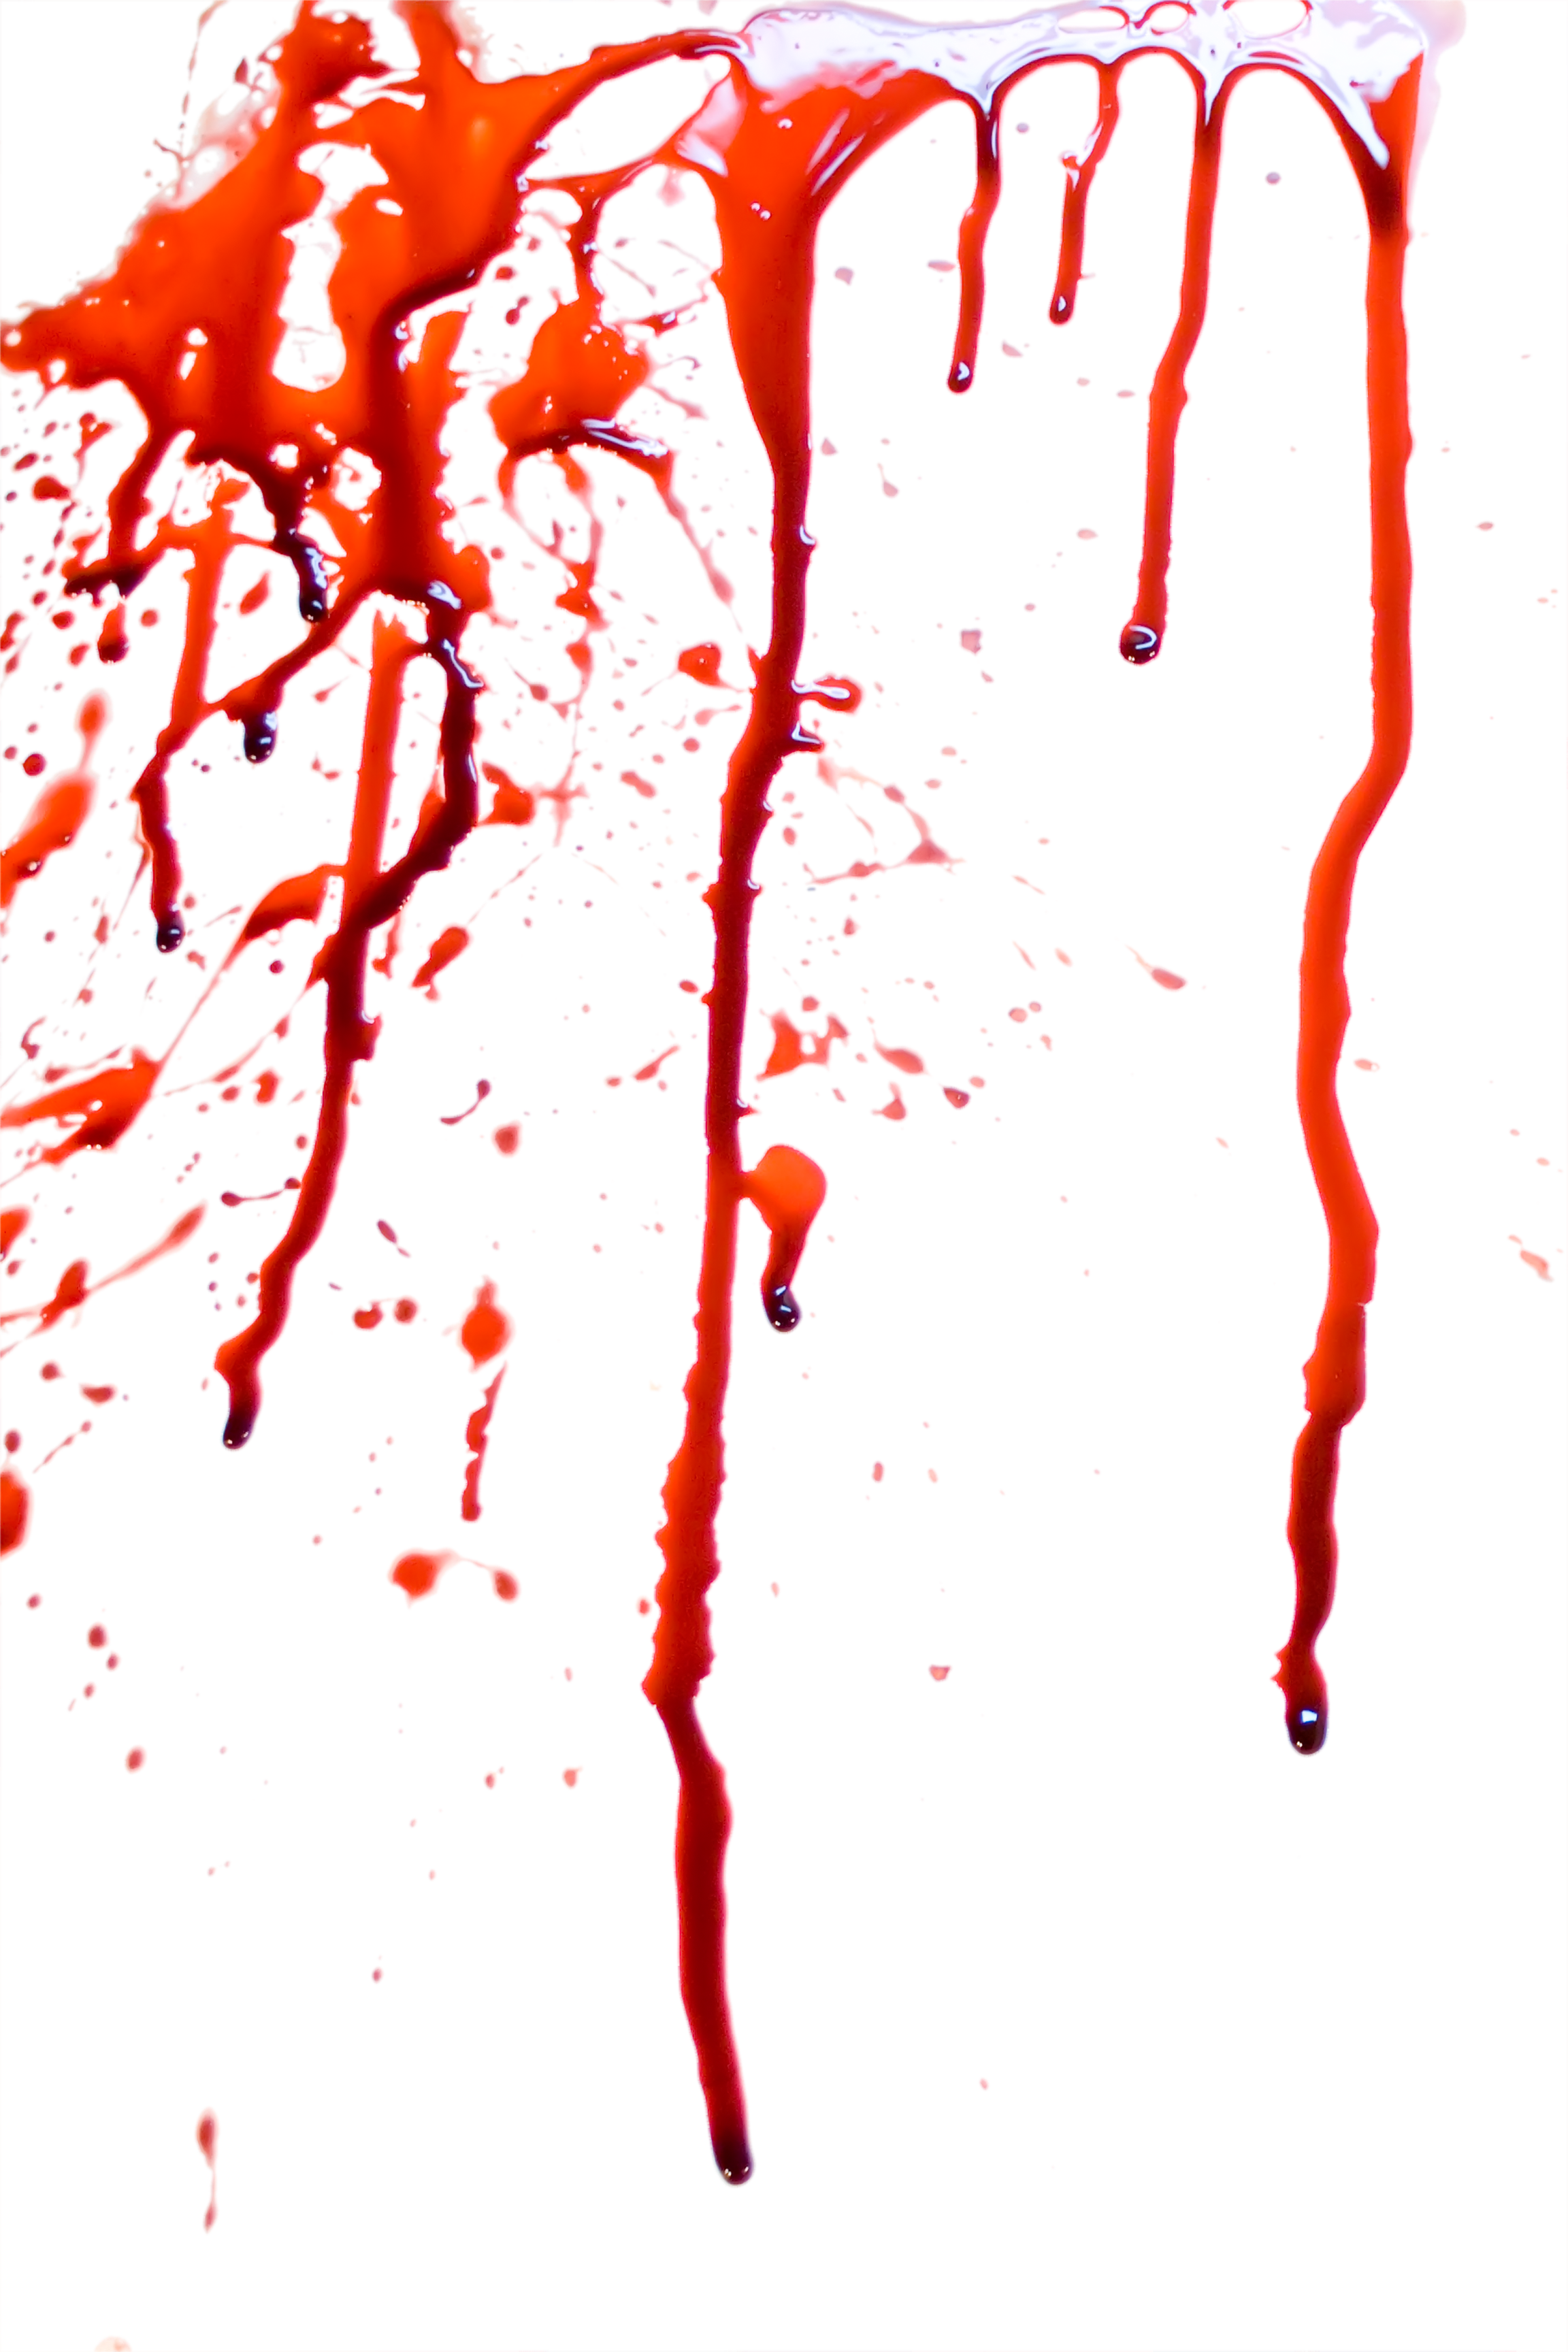 blood splatter seven isolated photo #8365